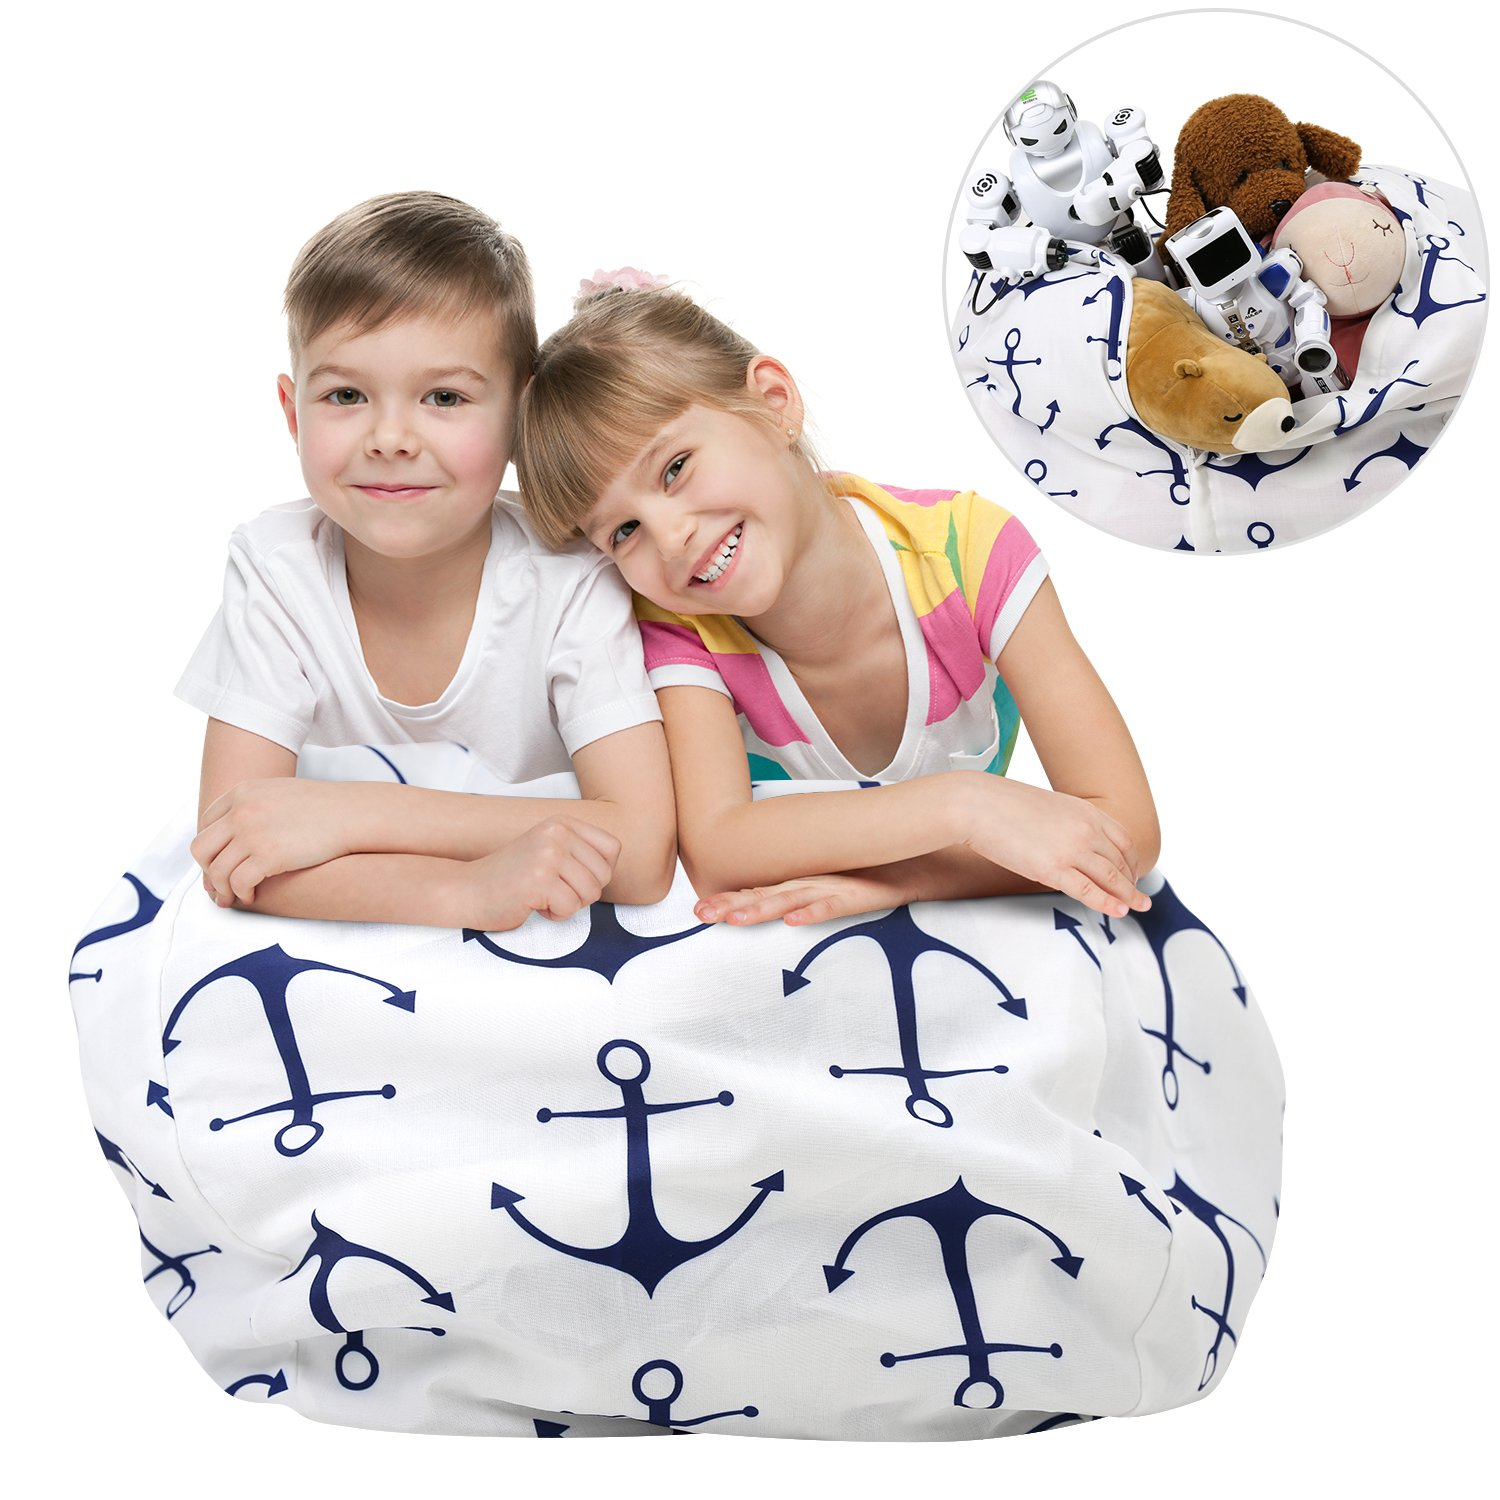 Stuffed Animal Storage Bean Bag Chair, Zooawa Kids Bedroom Organizer for Plush Cuddly Jumbo Animal Toys - 26'', Blue + White Anchor by Zooawa